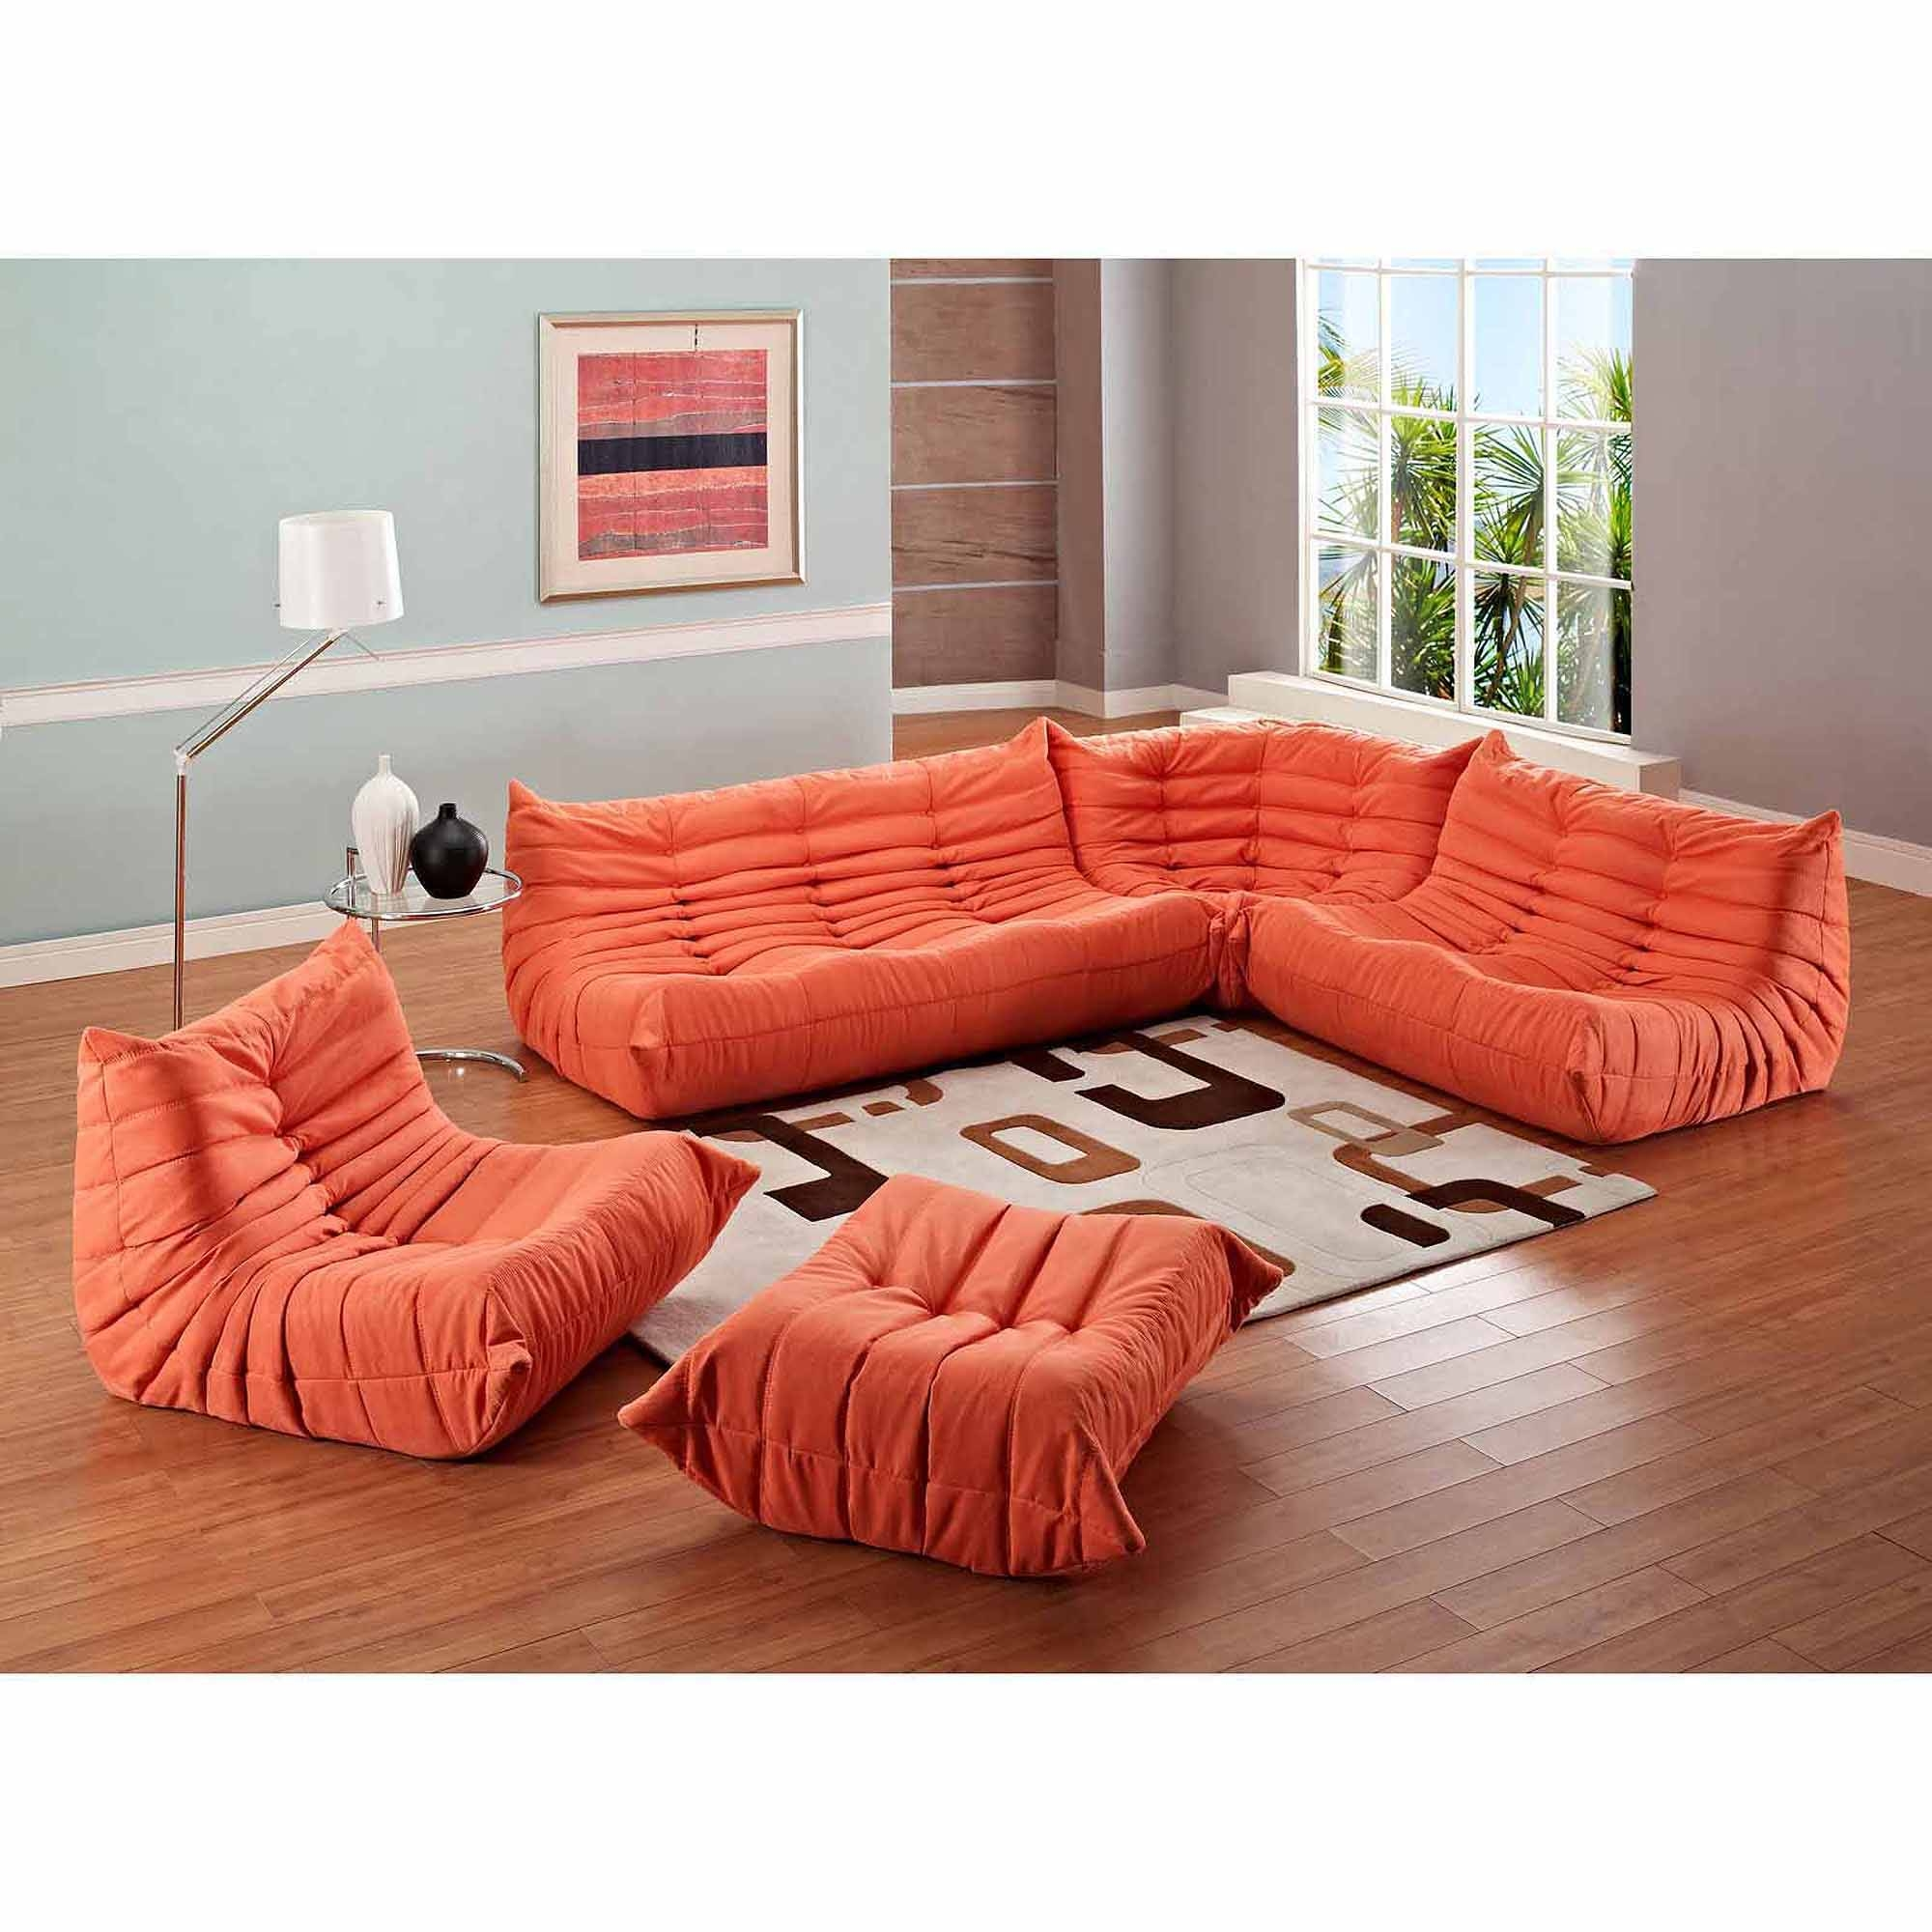 Modway Waverunner Modular Sectional Sofa Set (5-Piece) - Walmart intended for Orange Sectional Sofa (Image 27 of 30)